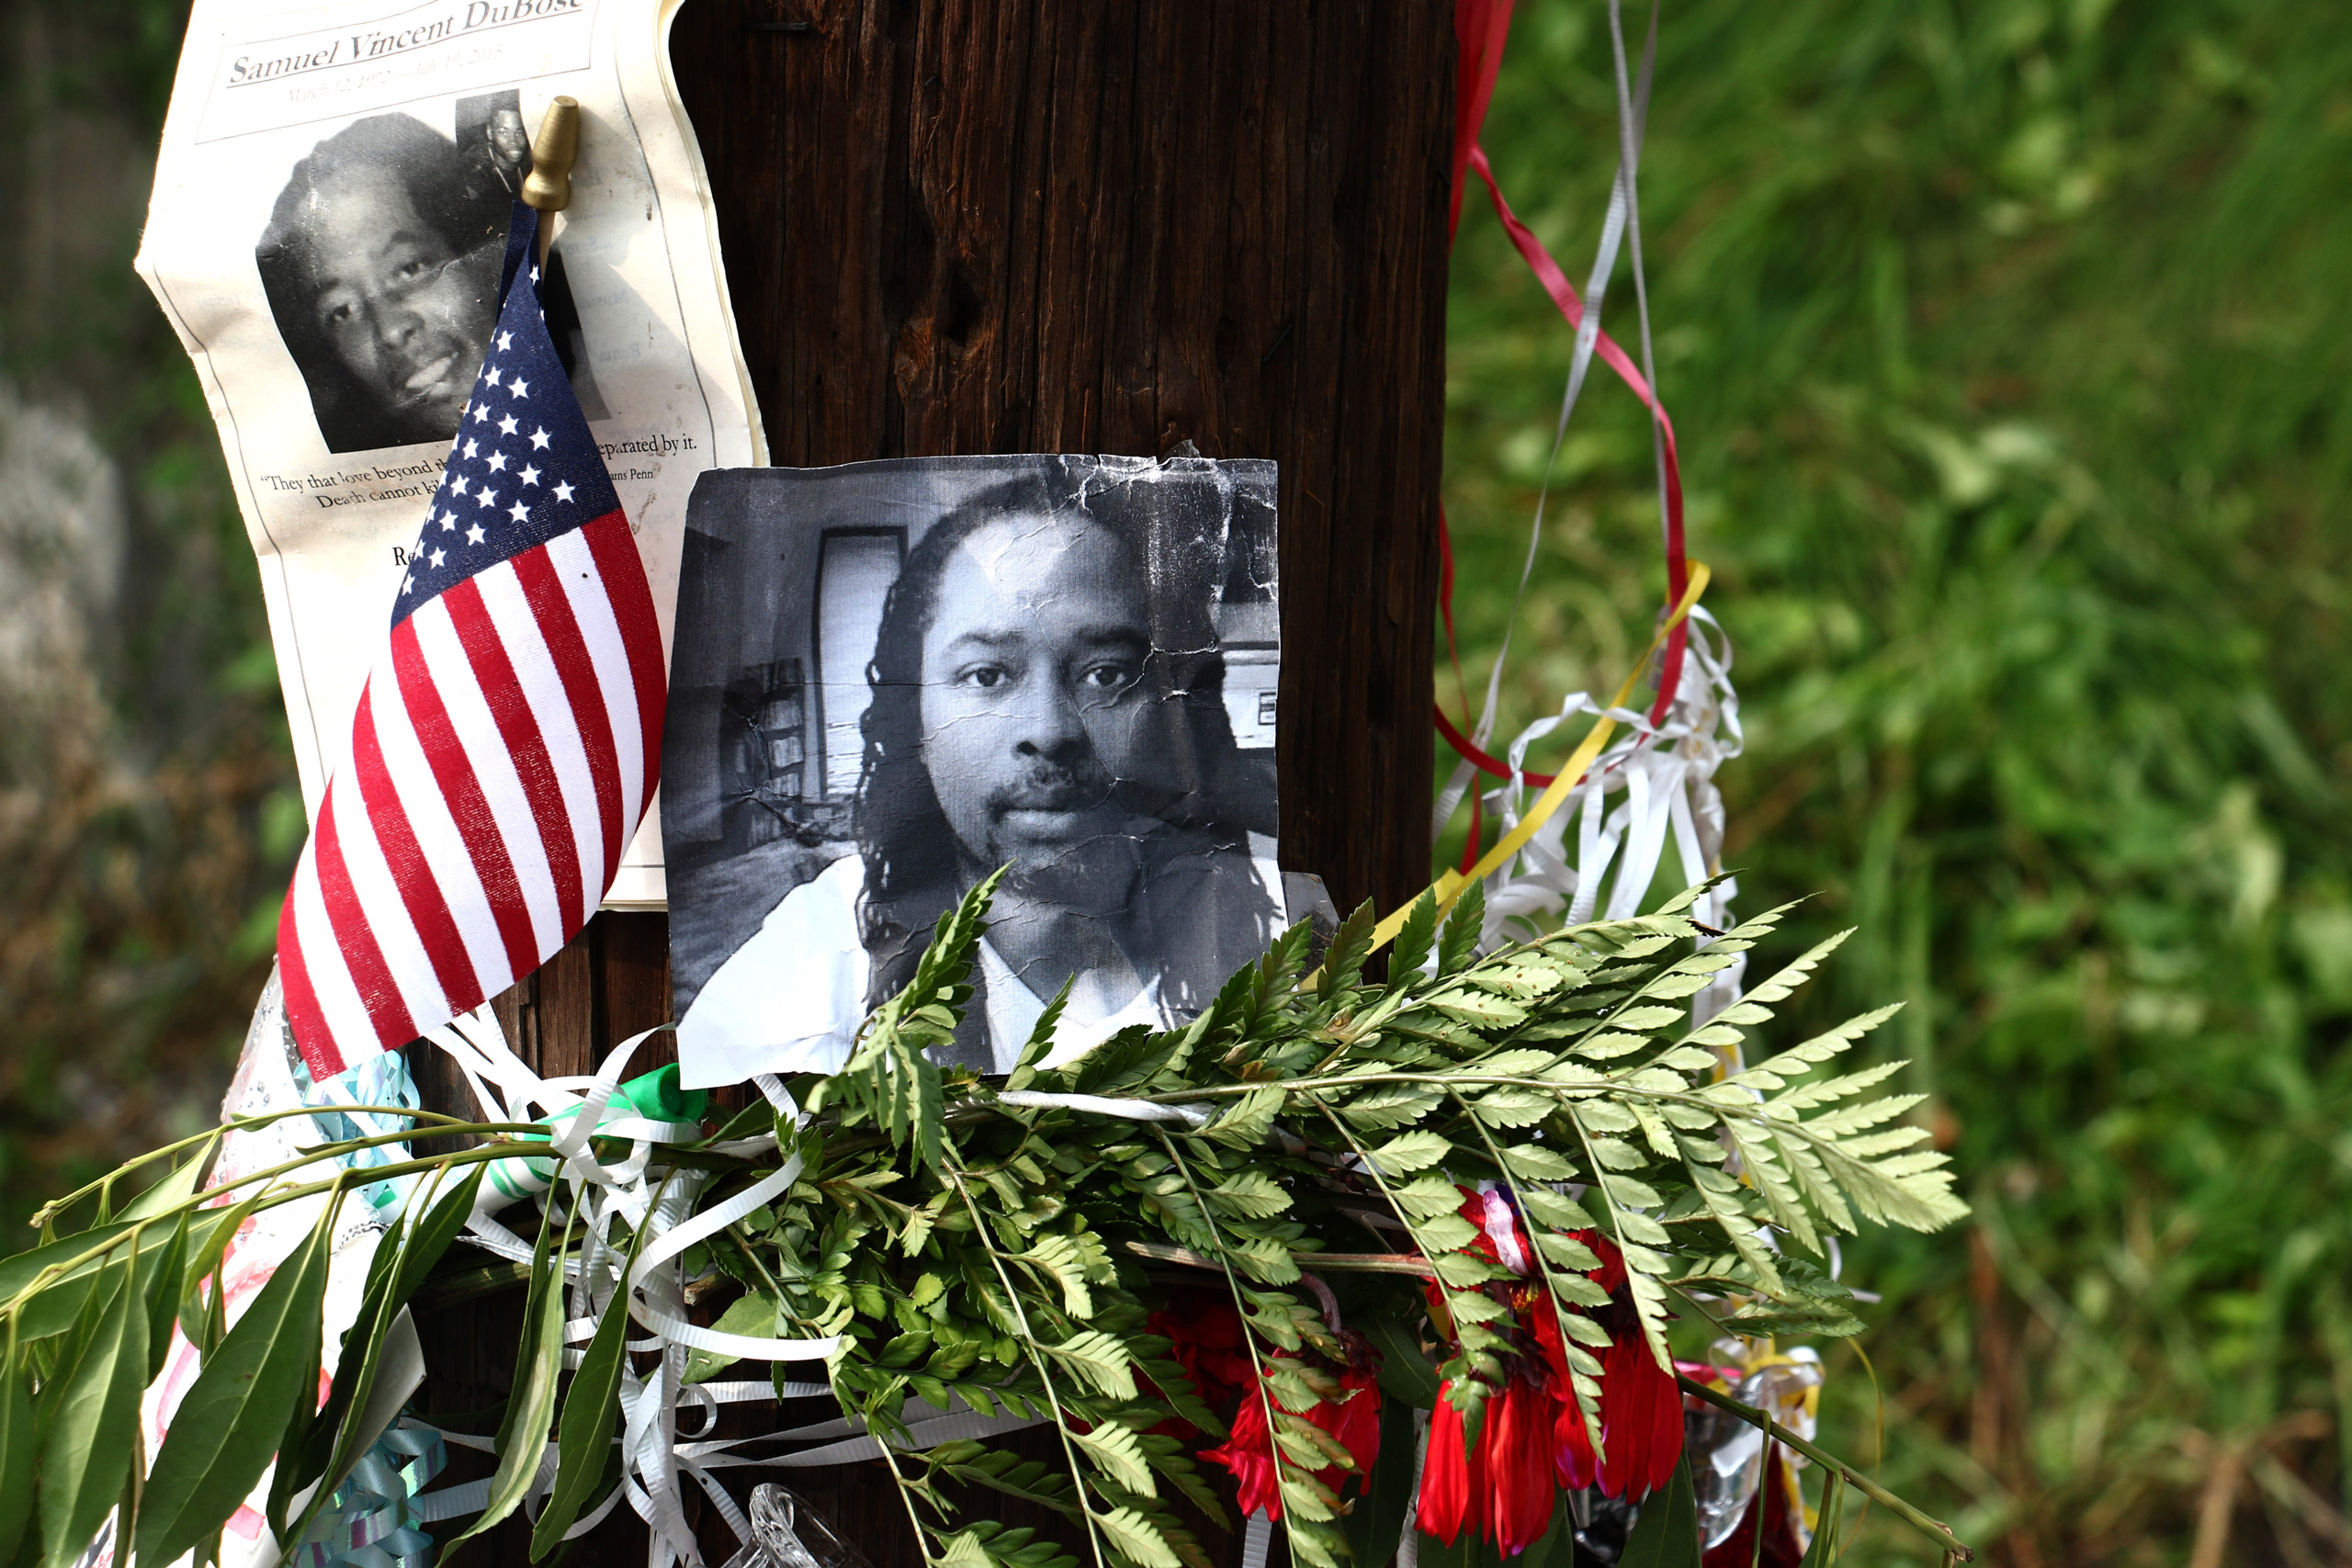 Photos of Samuel DuBose hang on a pole at a memorial  in Cincinnati on July 29, 2015.